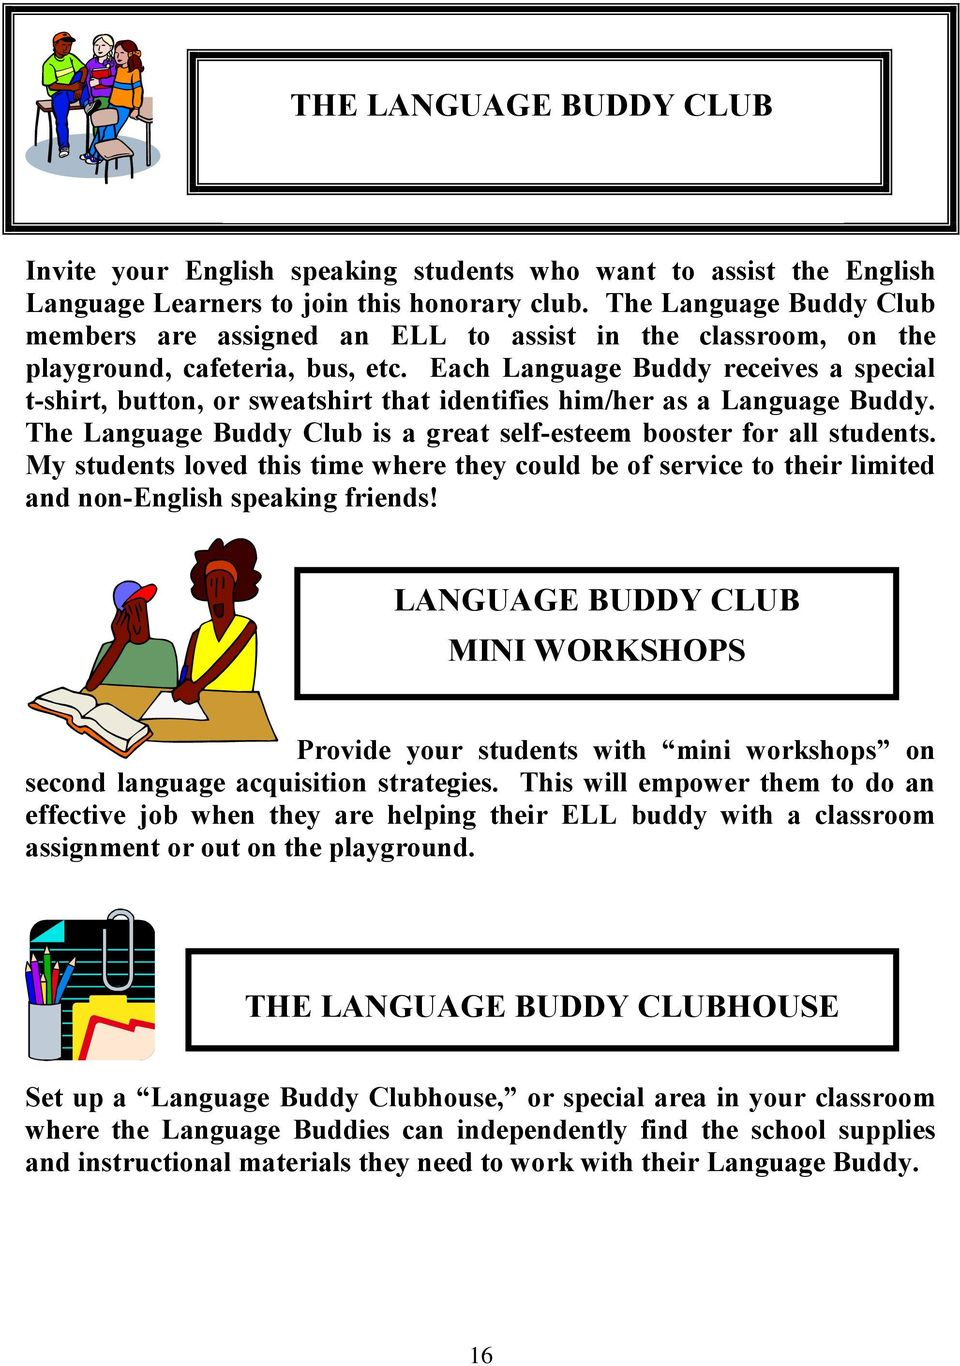 Each Language Buddy receives a special t-shirt, button, or sweatshirt that identifies him/her as a Language Buddy. The Language Buddy Club is a great self-esteem booster for all students.